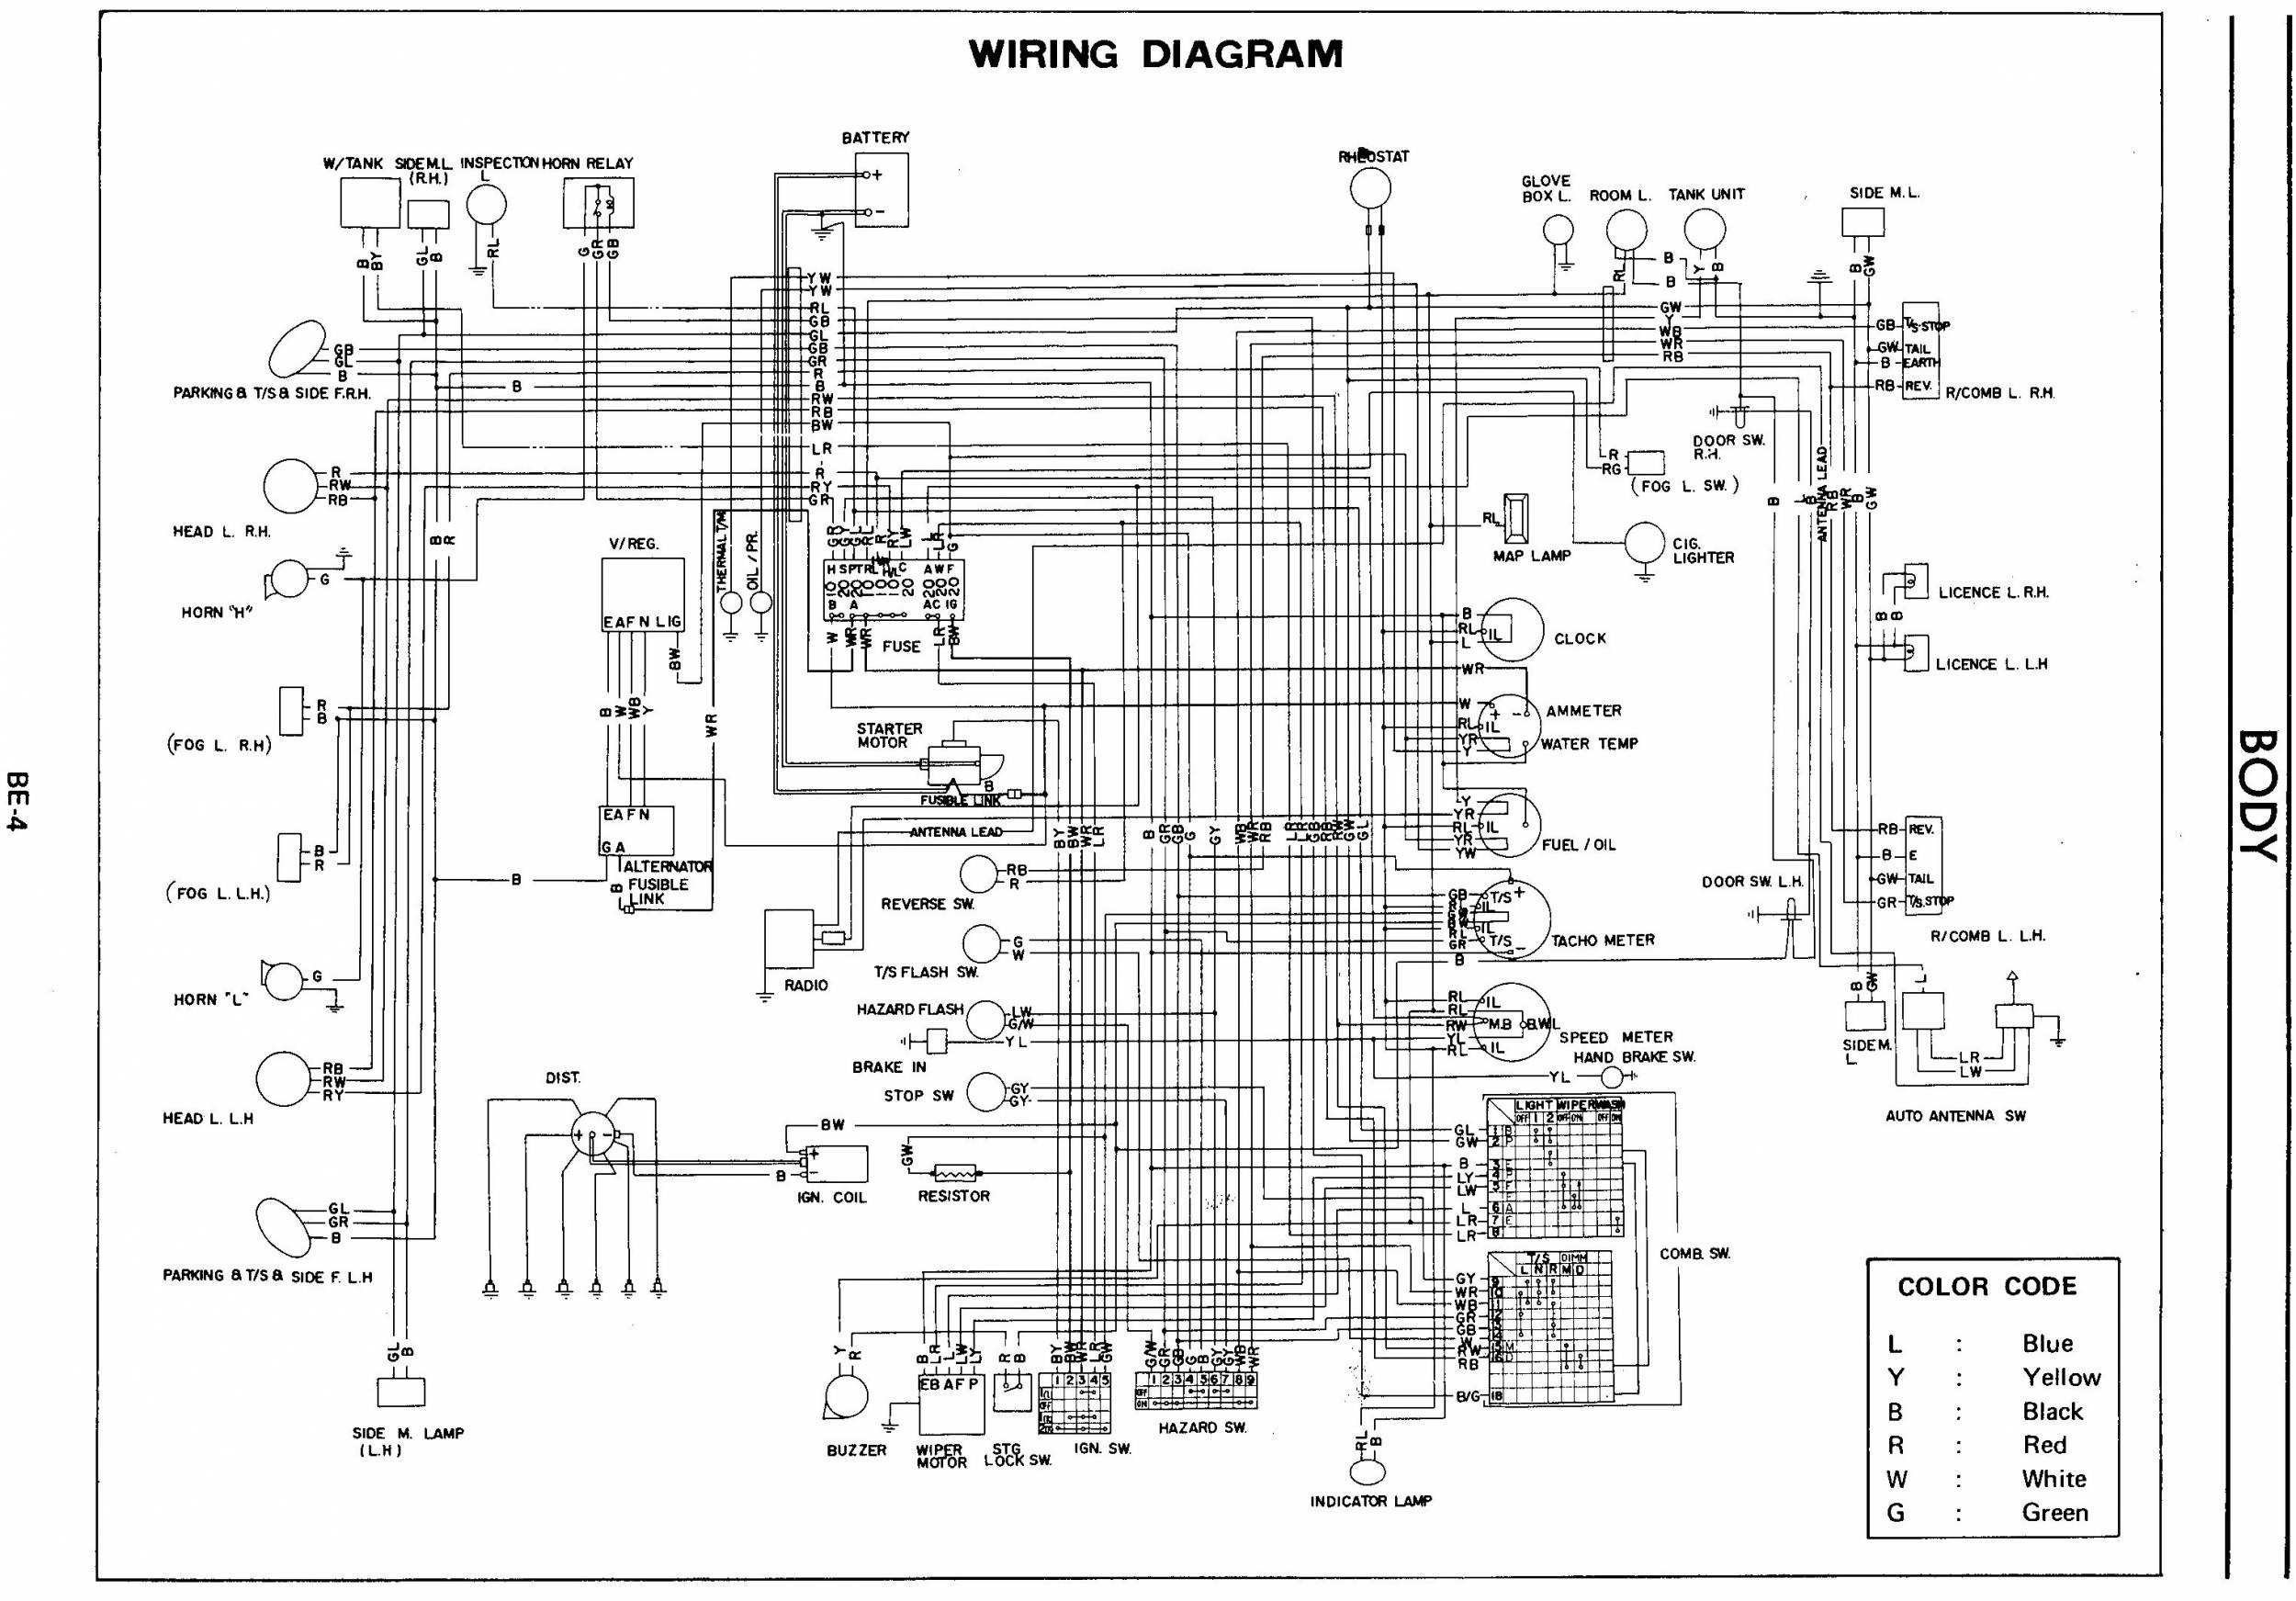 Ml320 Engine Diagram Mercedes Ml320 Engine Diagram Wiring Diagrams Konsult Of Ml320 Engine Diagram Peerless Motor Wiring Diagram